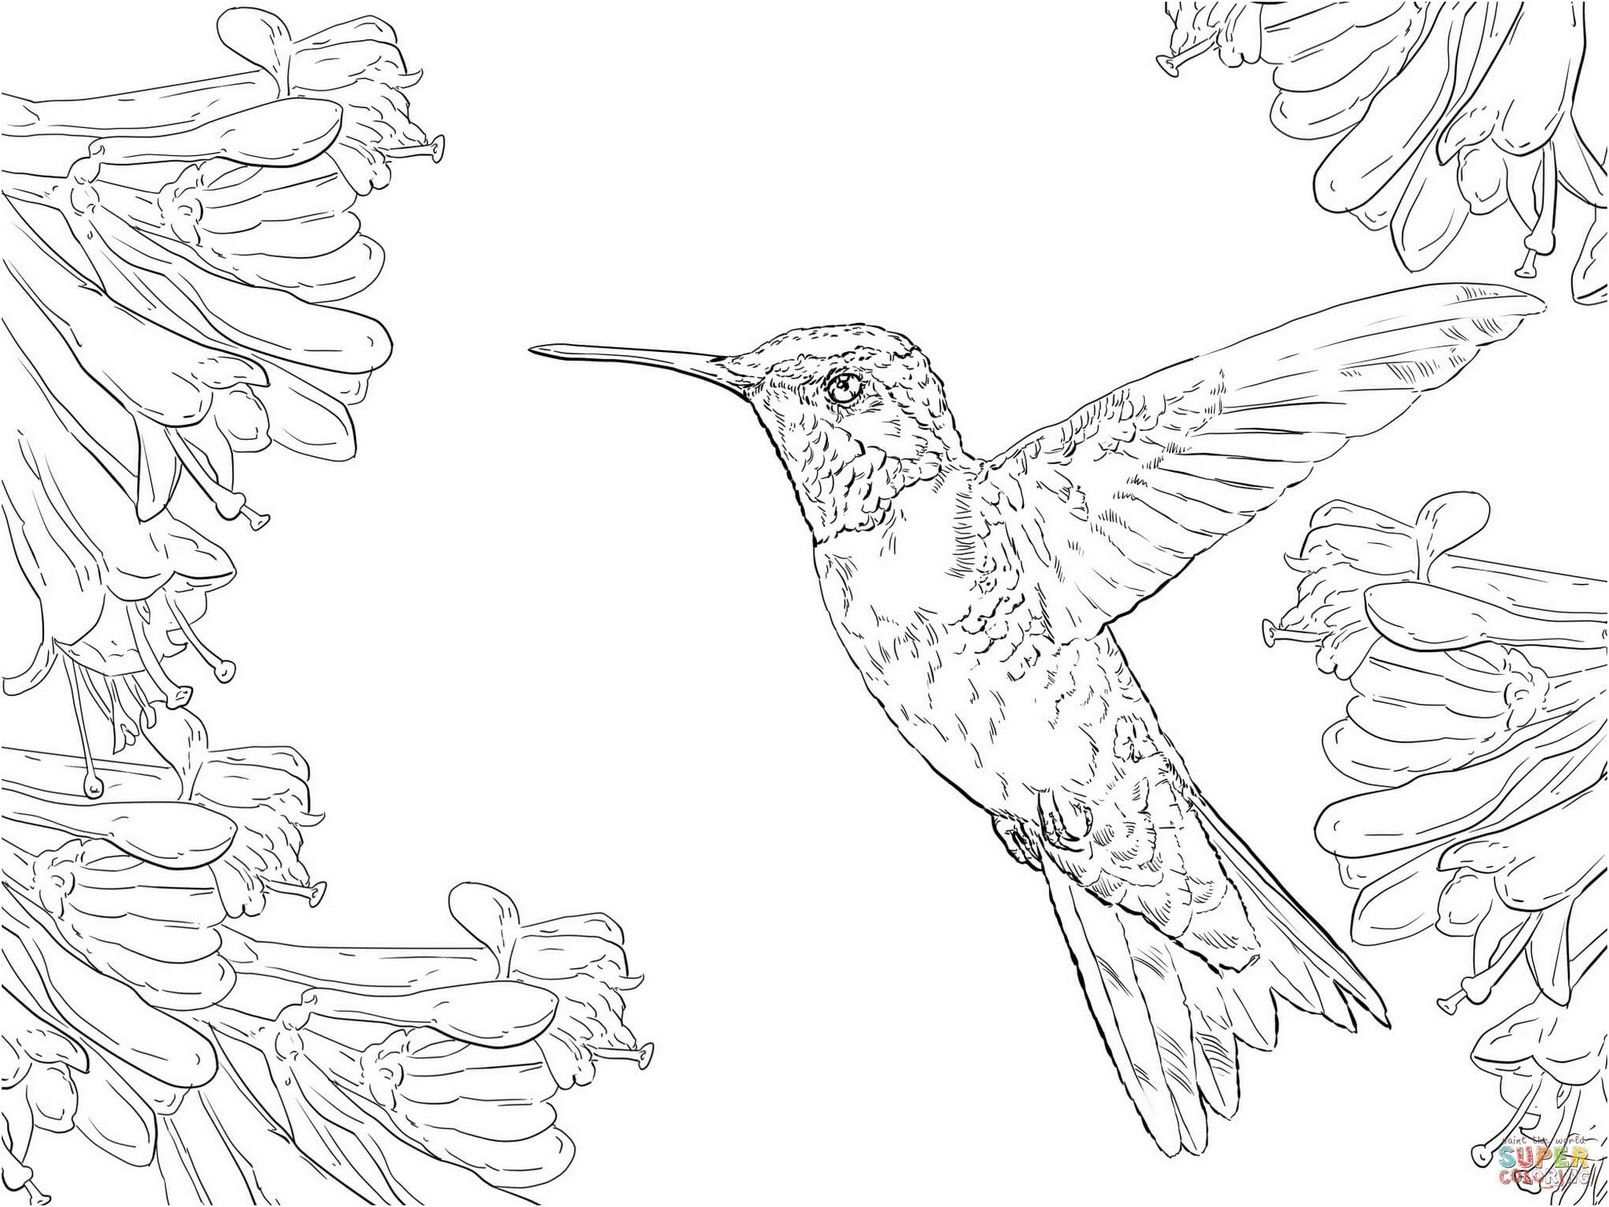 coloring page hummingbird full | Coloring Board | Pinterest ...